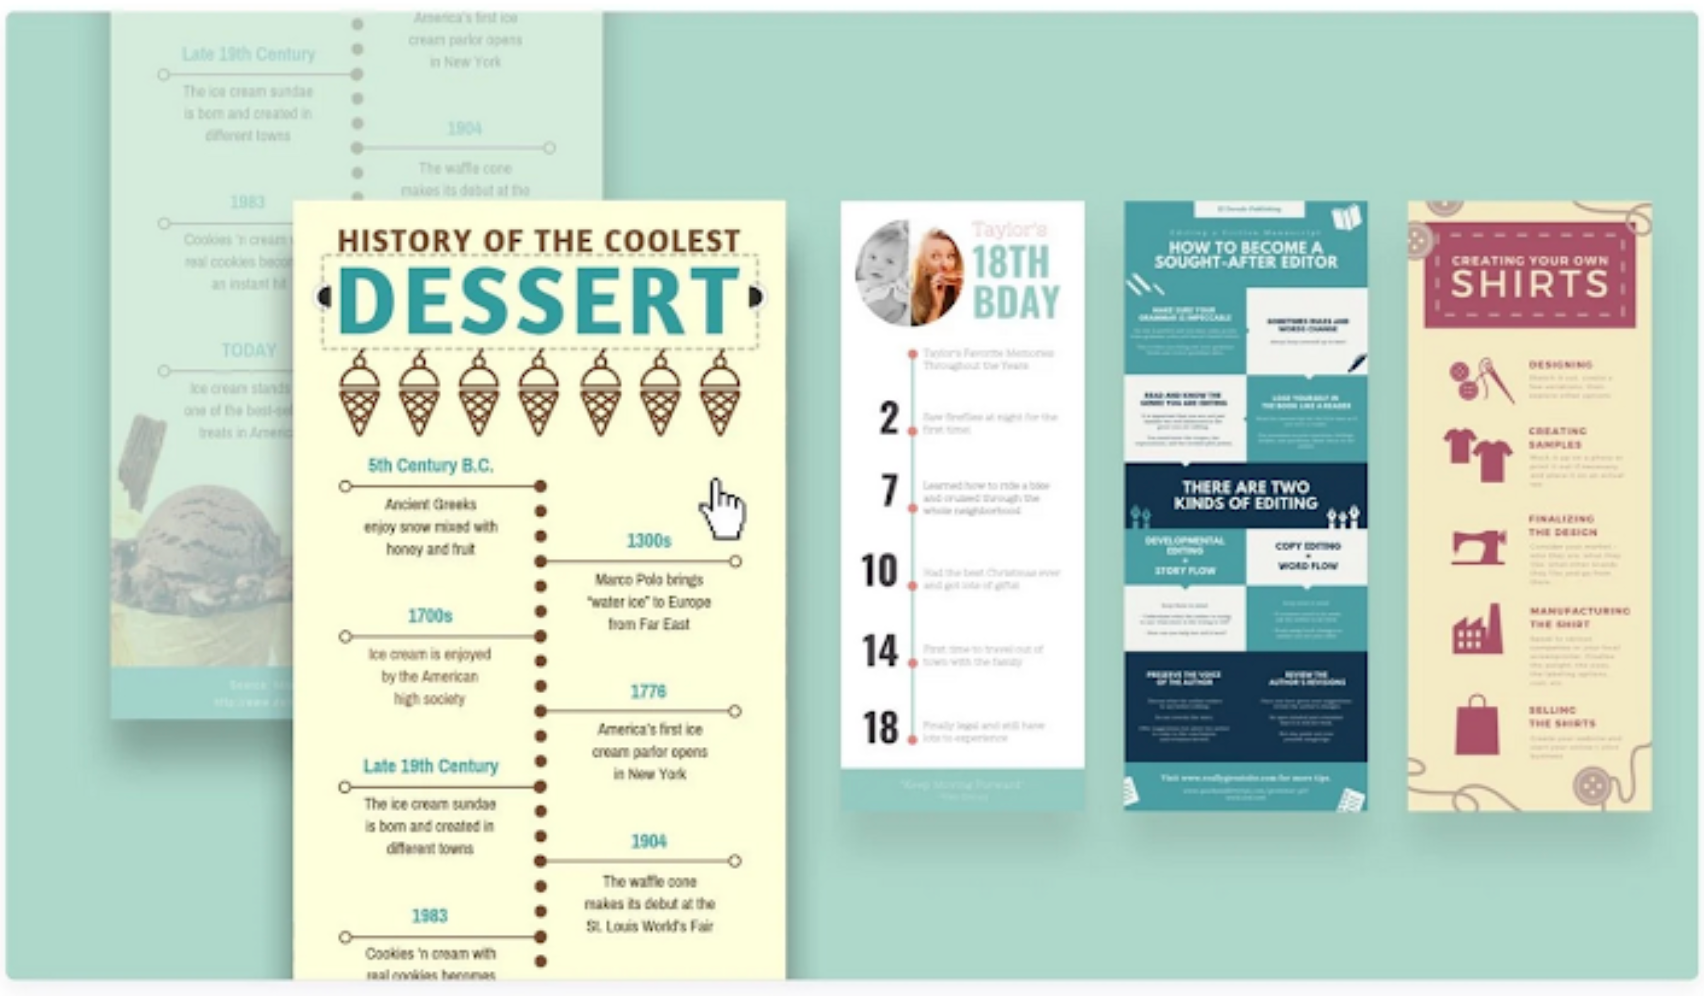 Canva: Create Marketing Collateral - 11 Best Inbound Marketing Tools to Boost Your Business in 2021